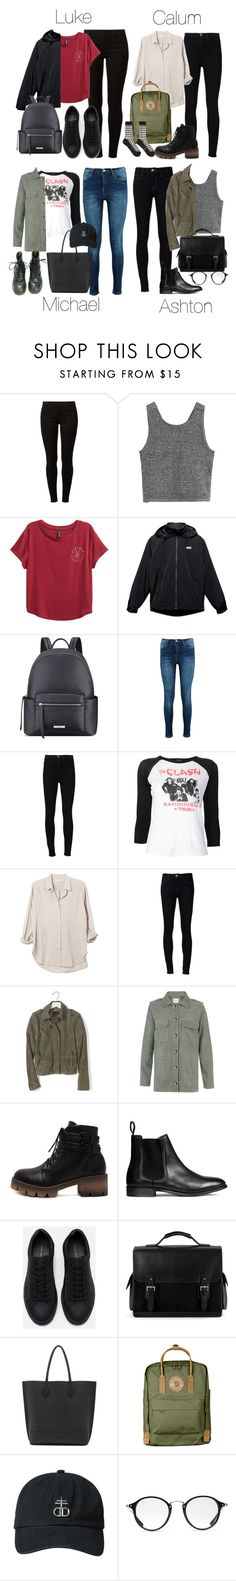 """""""School Outfits (64/?)"""" by fivesecondsofinspiration ❤ liked on Polyvore featuring Dorothy Perkins, WithChic, Nine West, Boohoo, Frame Denim, R13, Xirena, Ström, Banana Republic and Anine Bing"""